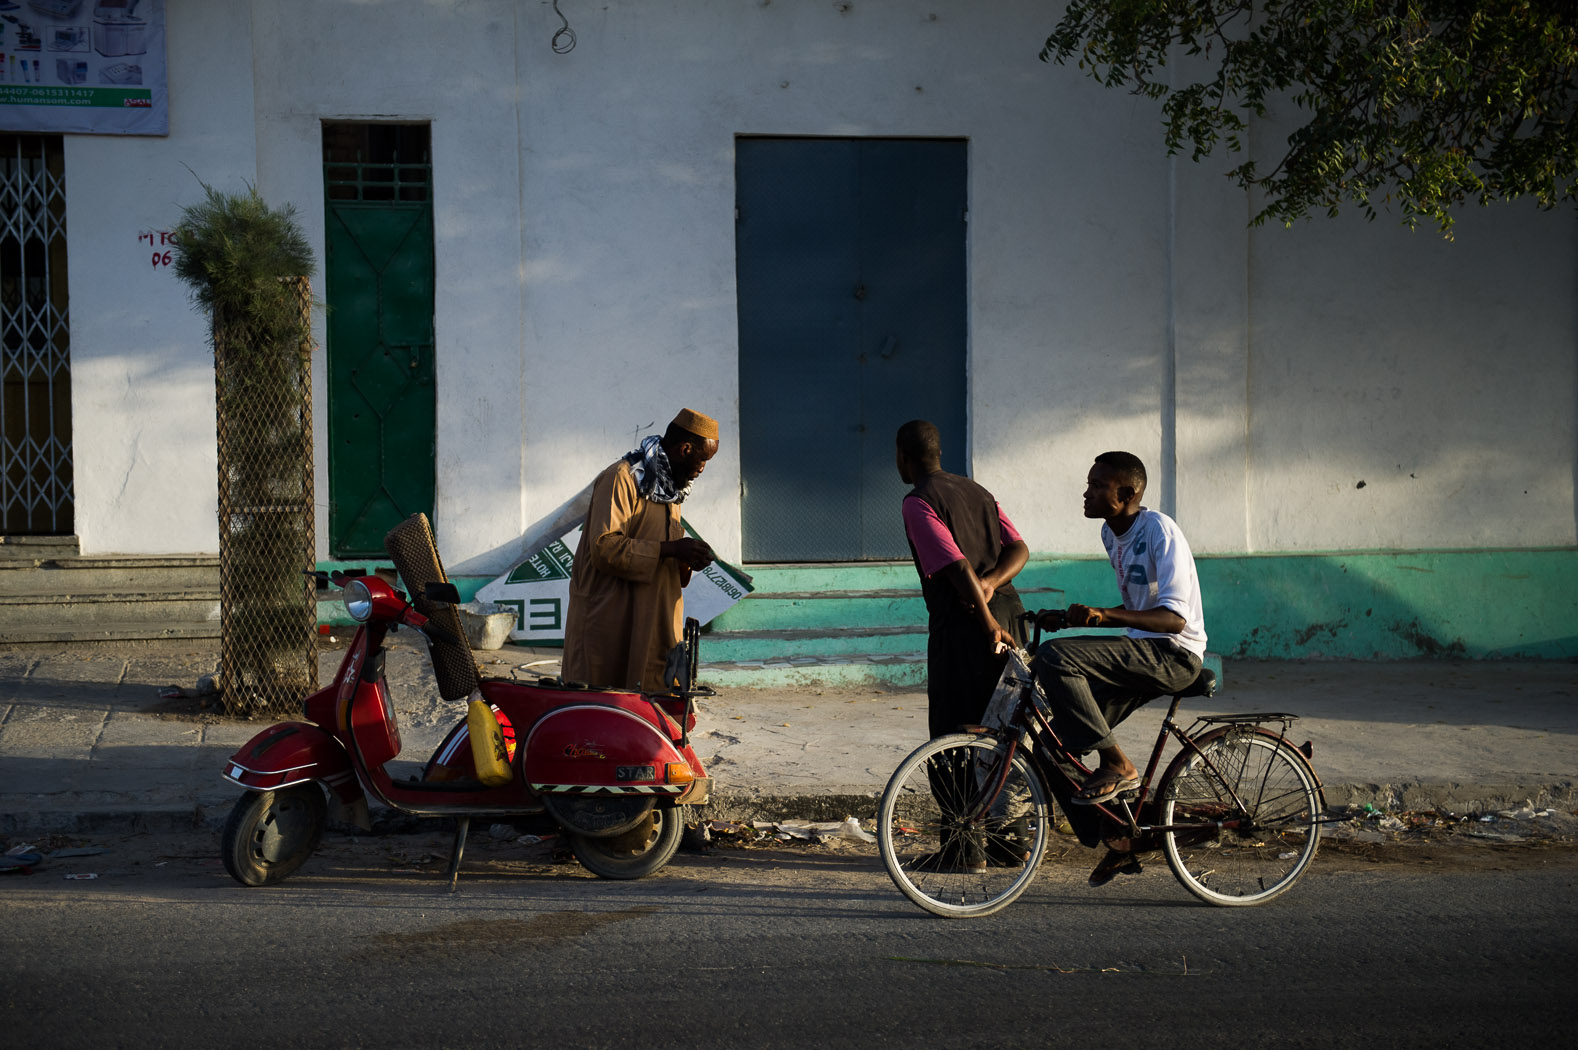 During the past few years of conflict, an informal curfew existed across the city at 4pm. Daily life now continues into the night.